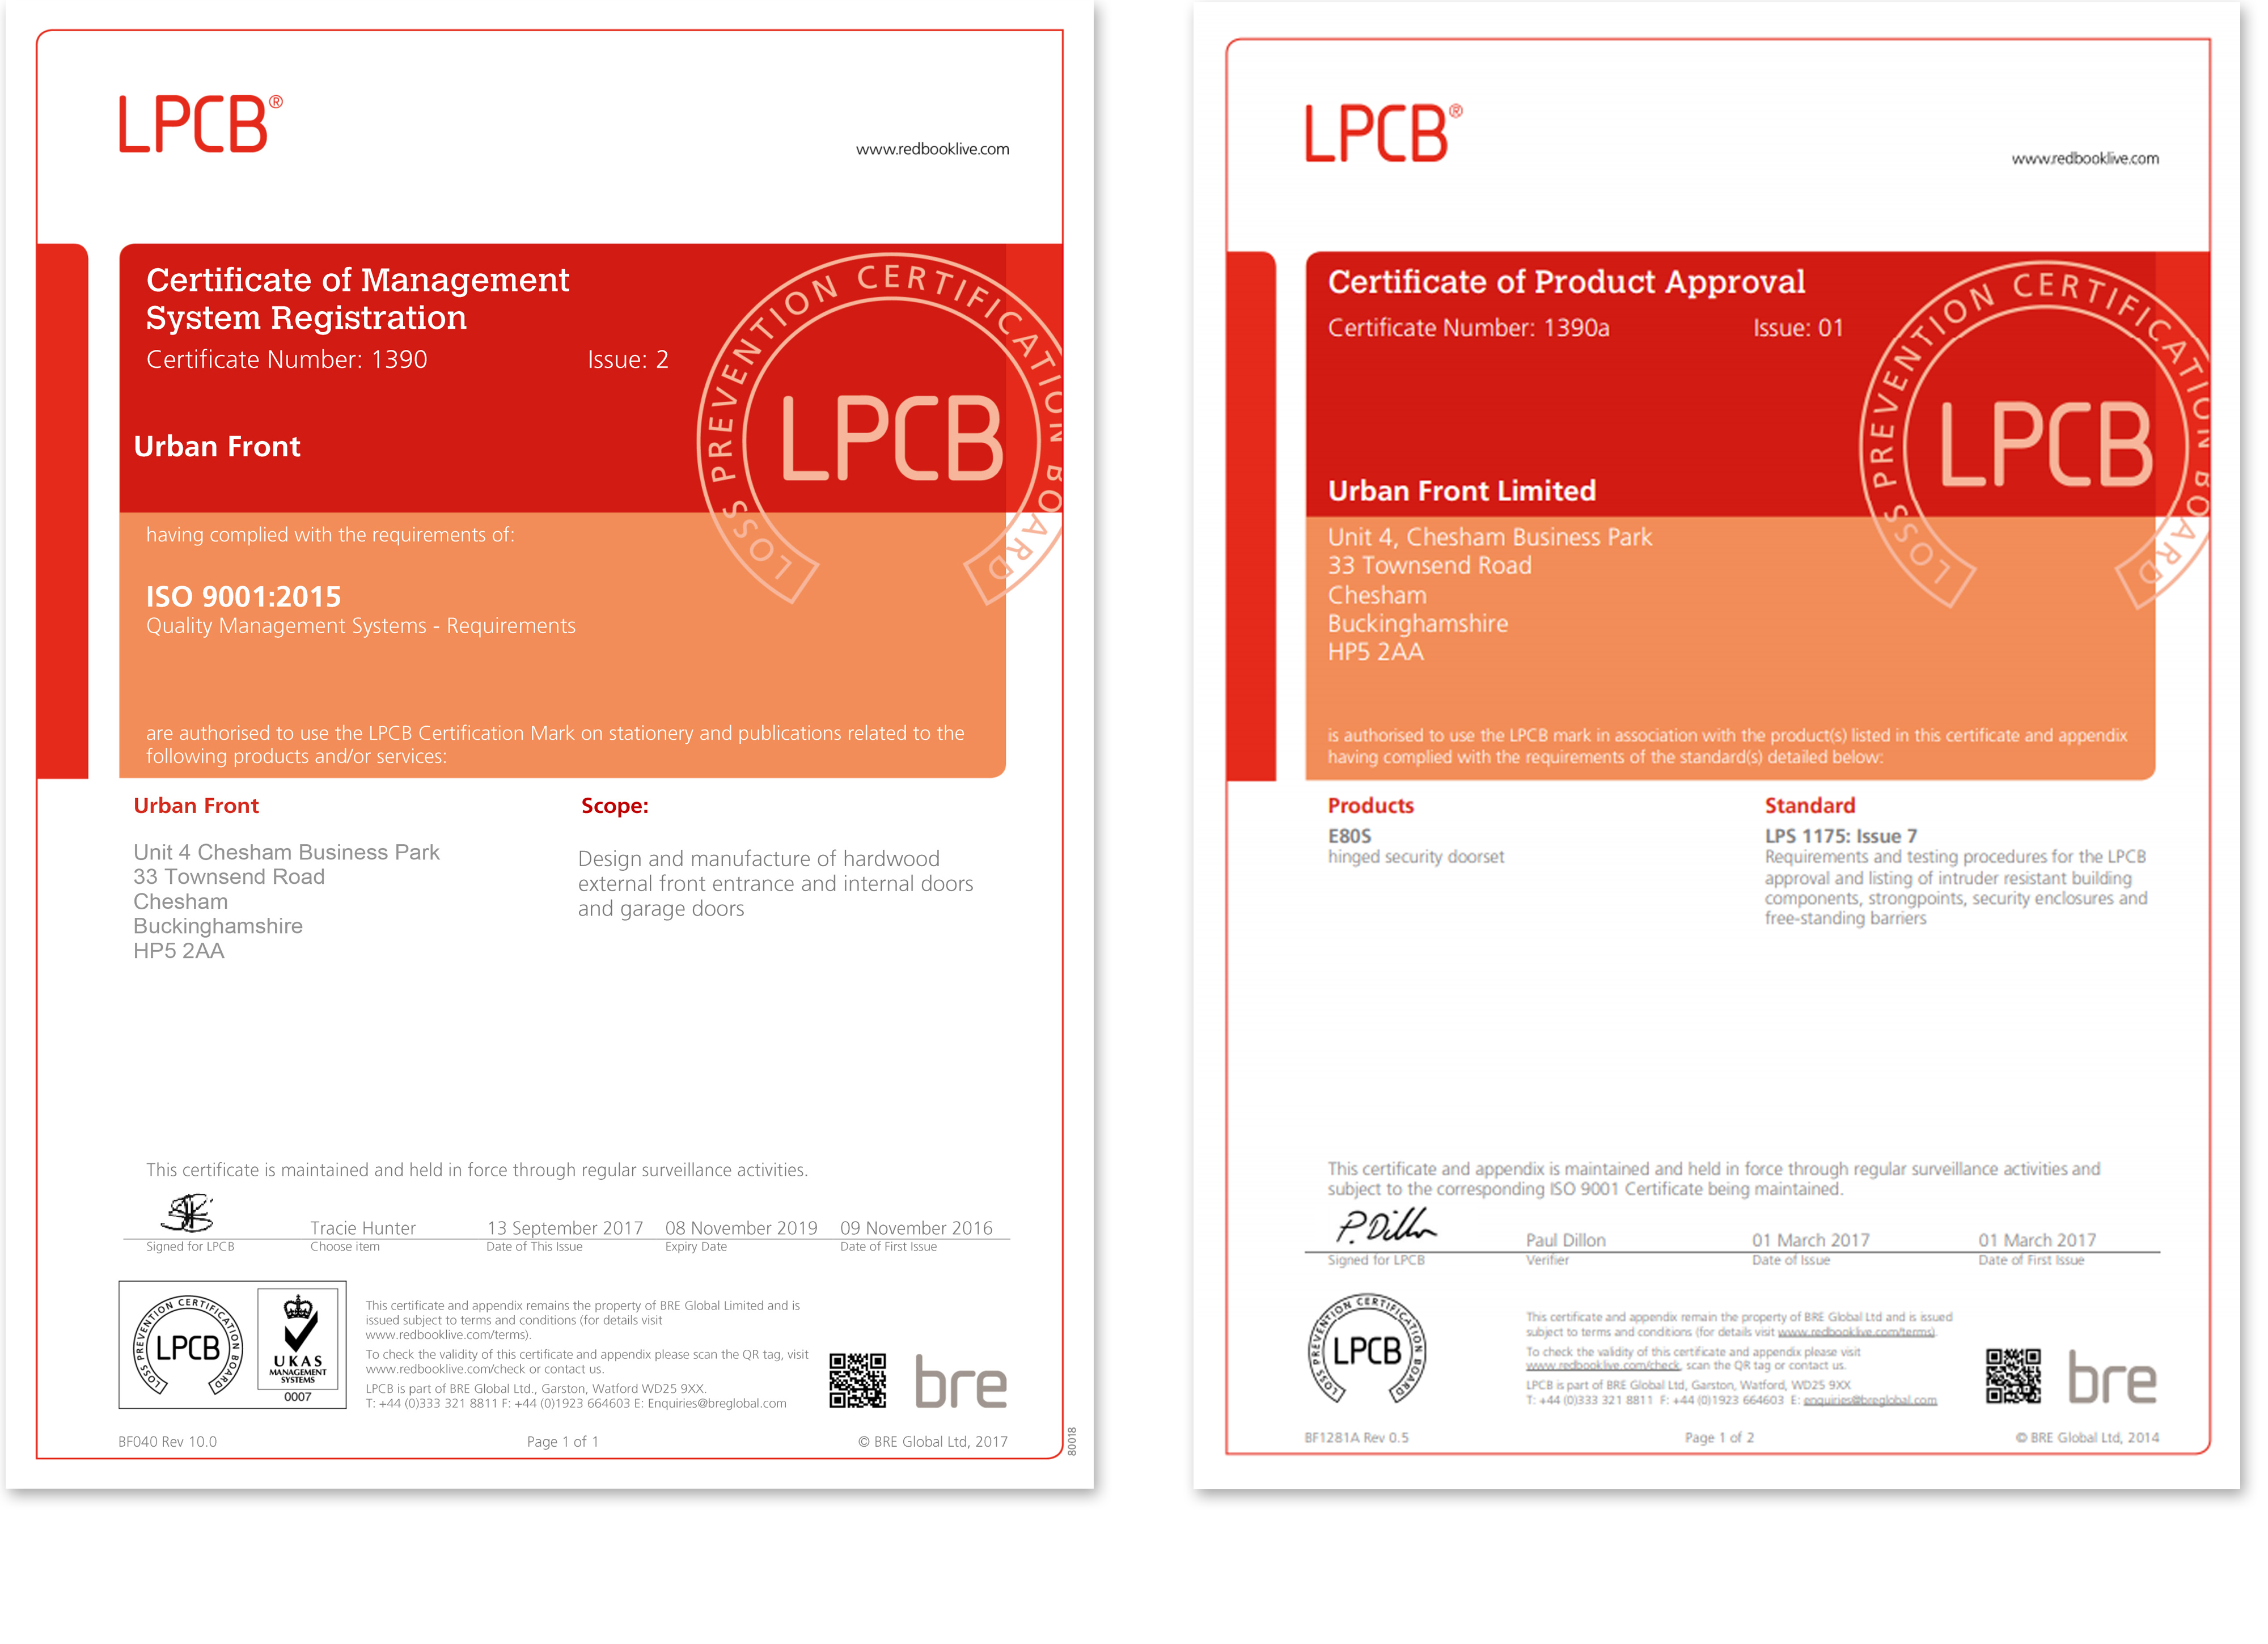 door certifications ISO 9001 & LPCB Urban Front